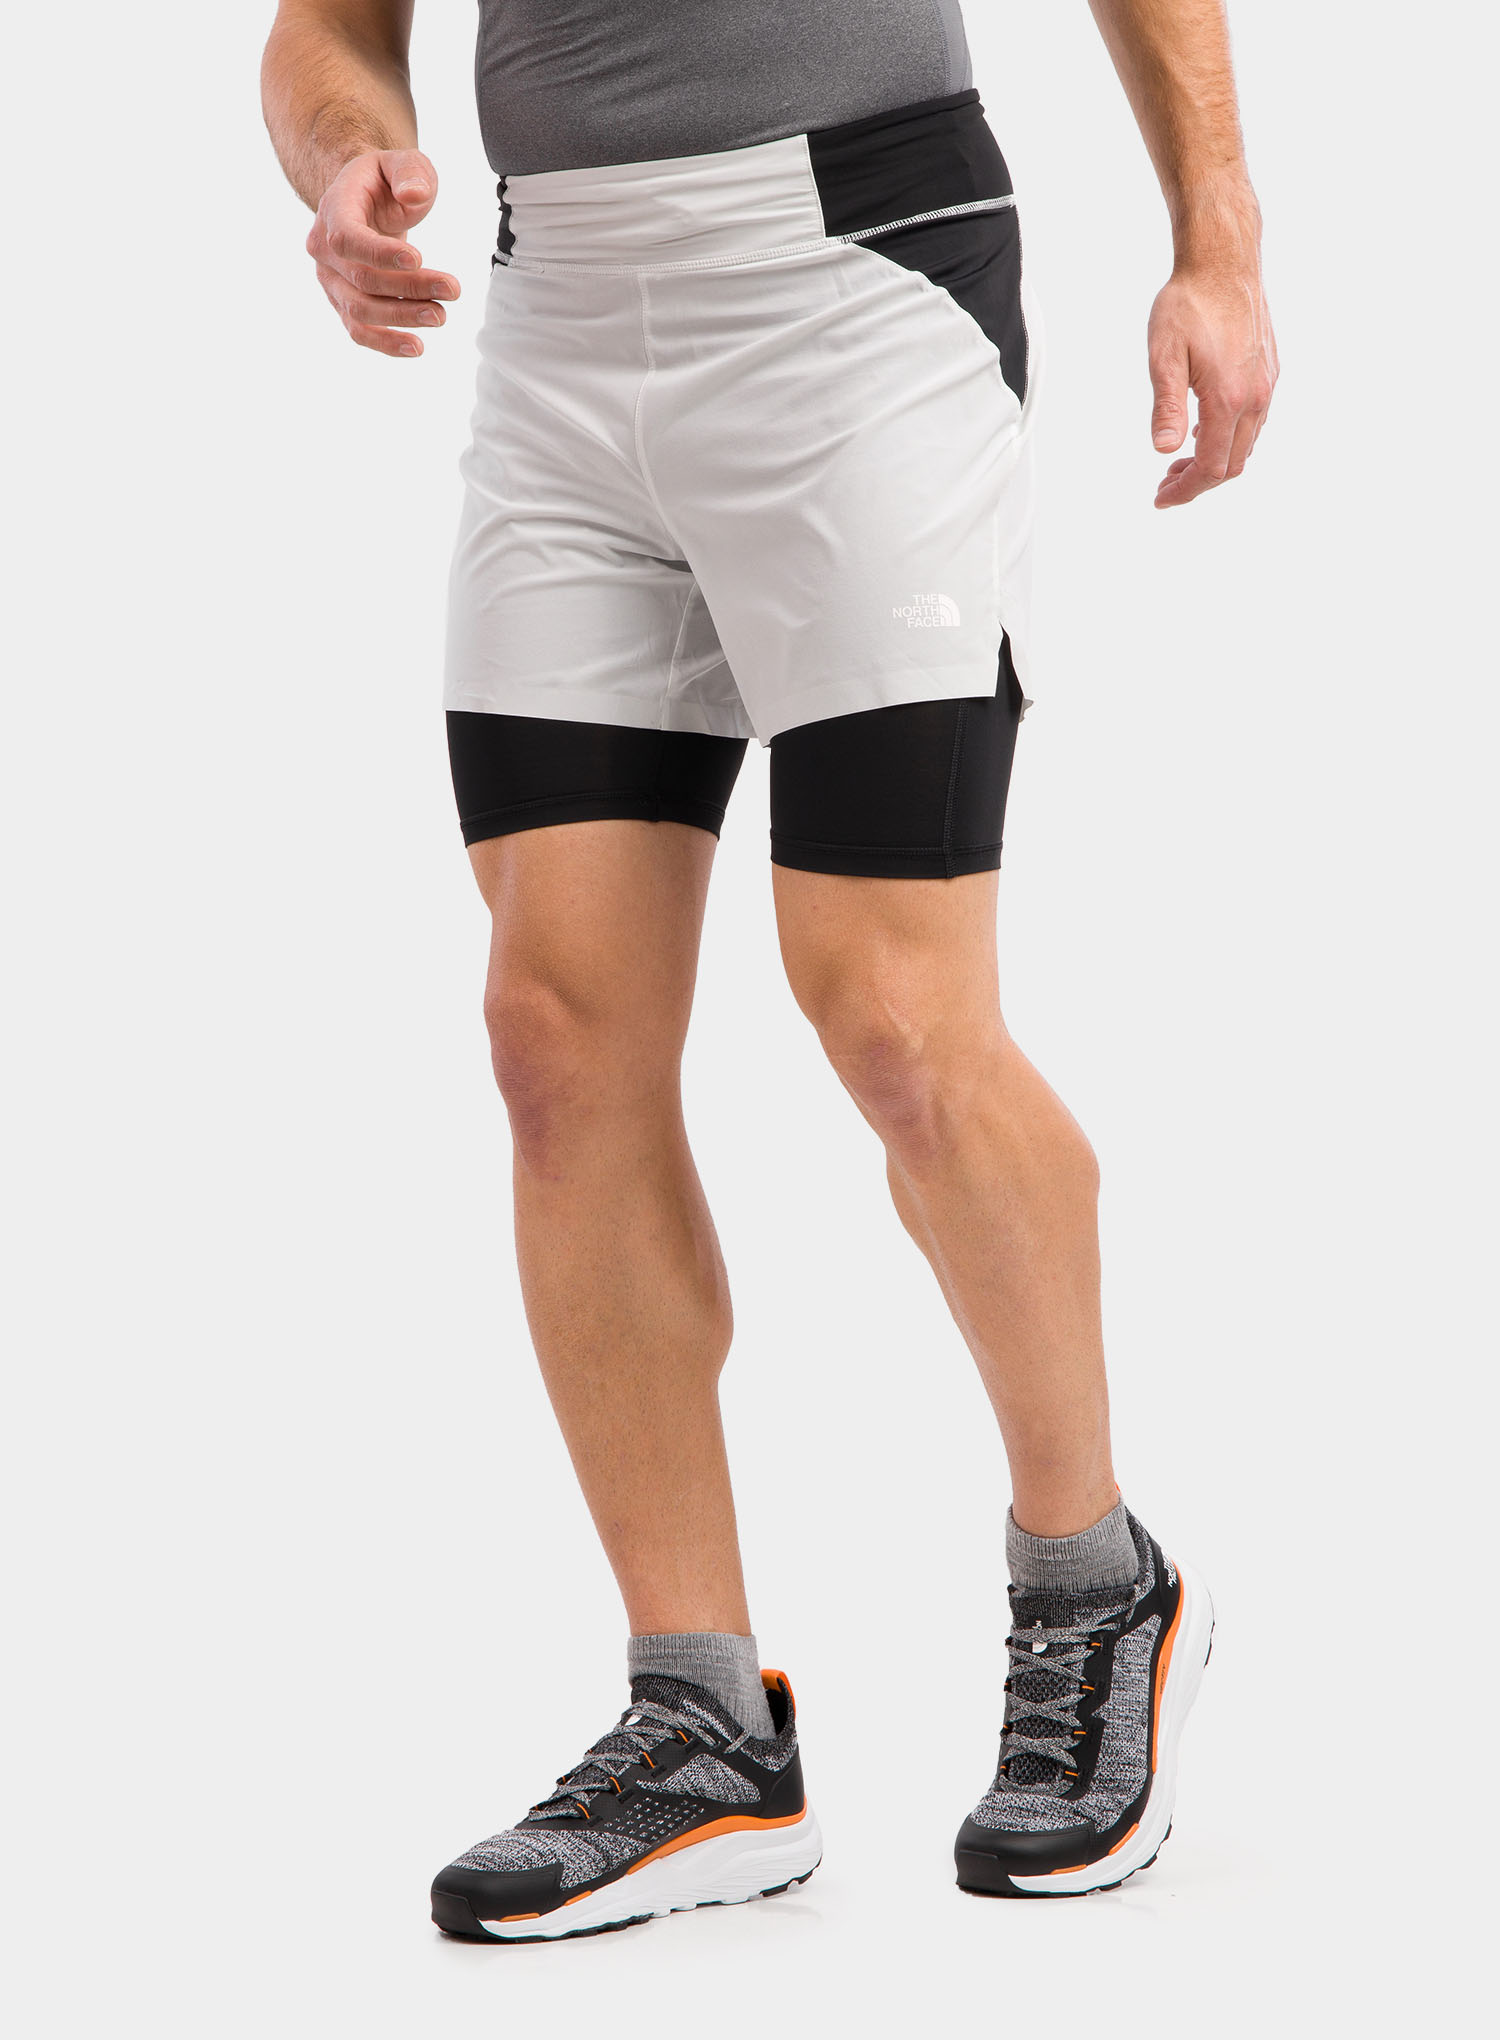 Spodenki The North Face Circadian Comp Lined Short - grey/blk - zdjęcie nr. 5